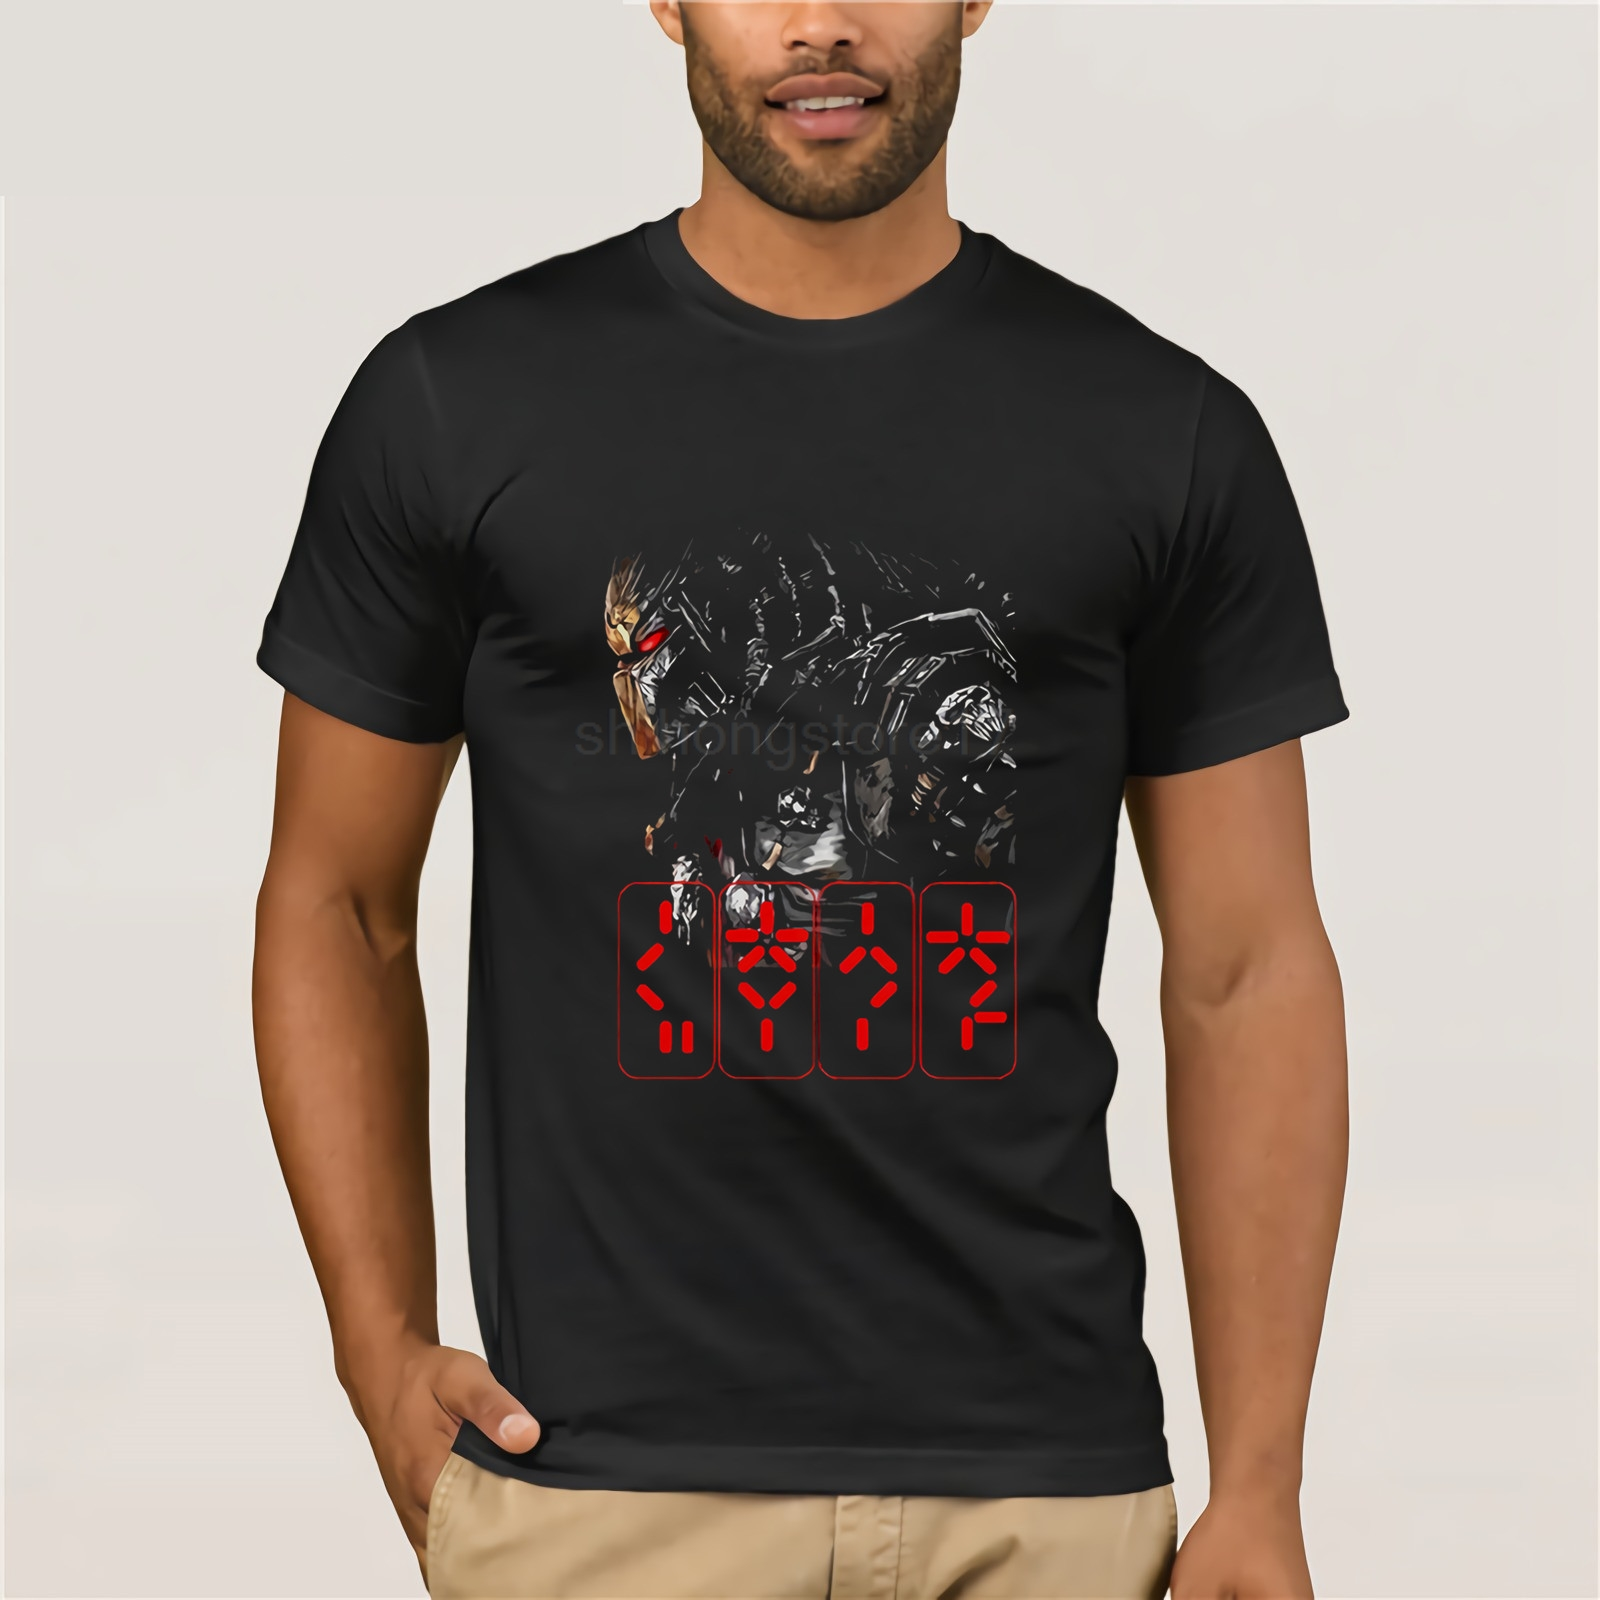 New PREDATOR Horror Thriller Movie Black T-Shirt T Shirt Tee Size S-3XL T-Shirt Fashiont Shirt Free Shipping Top Tee image